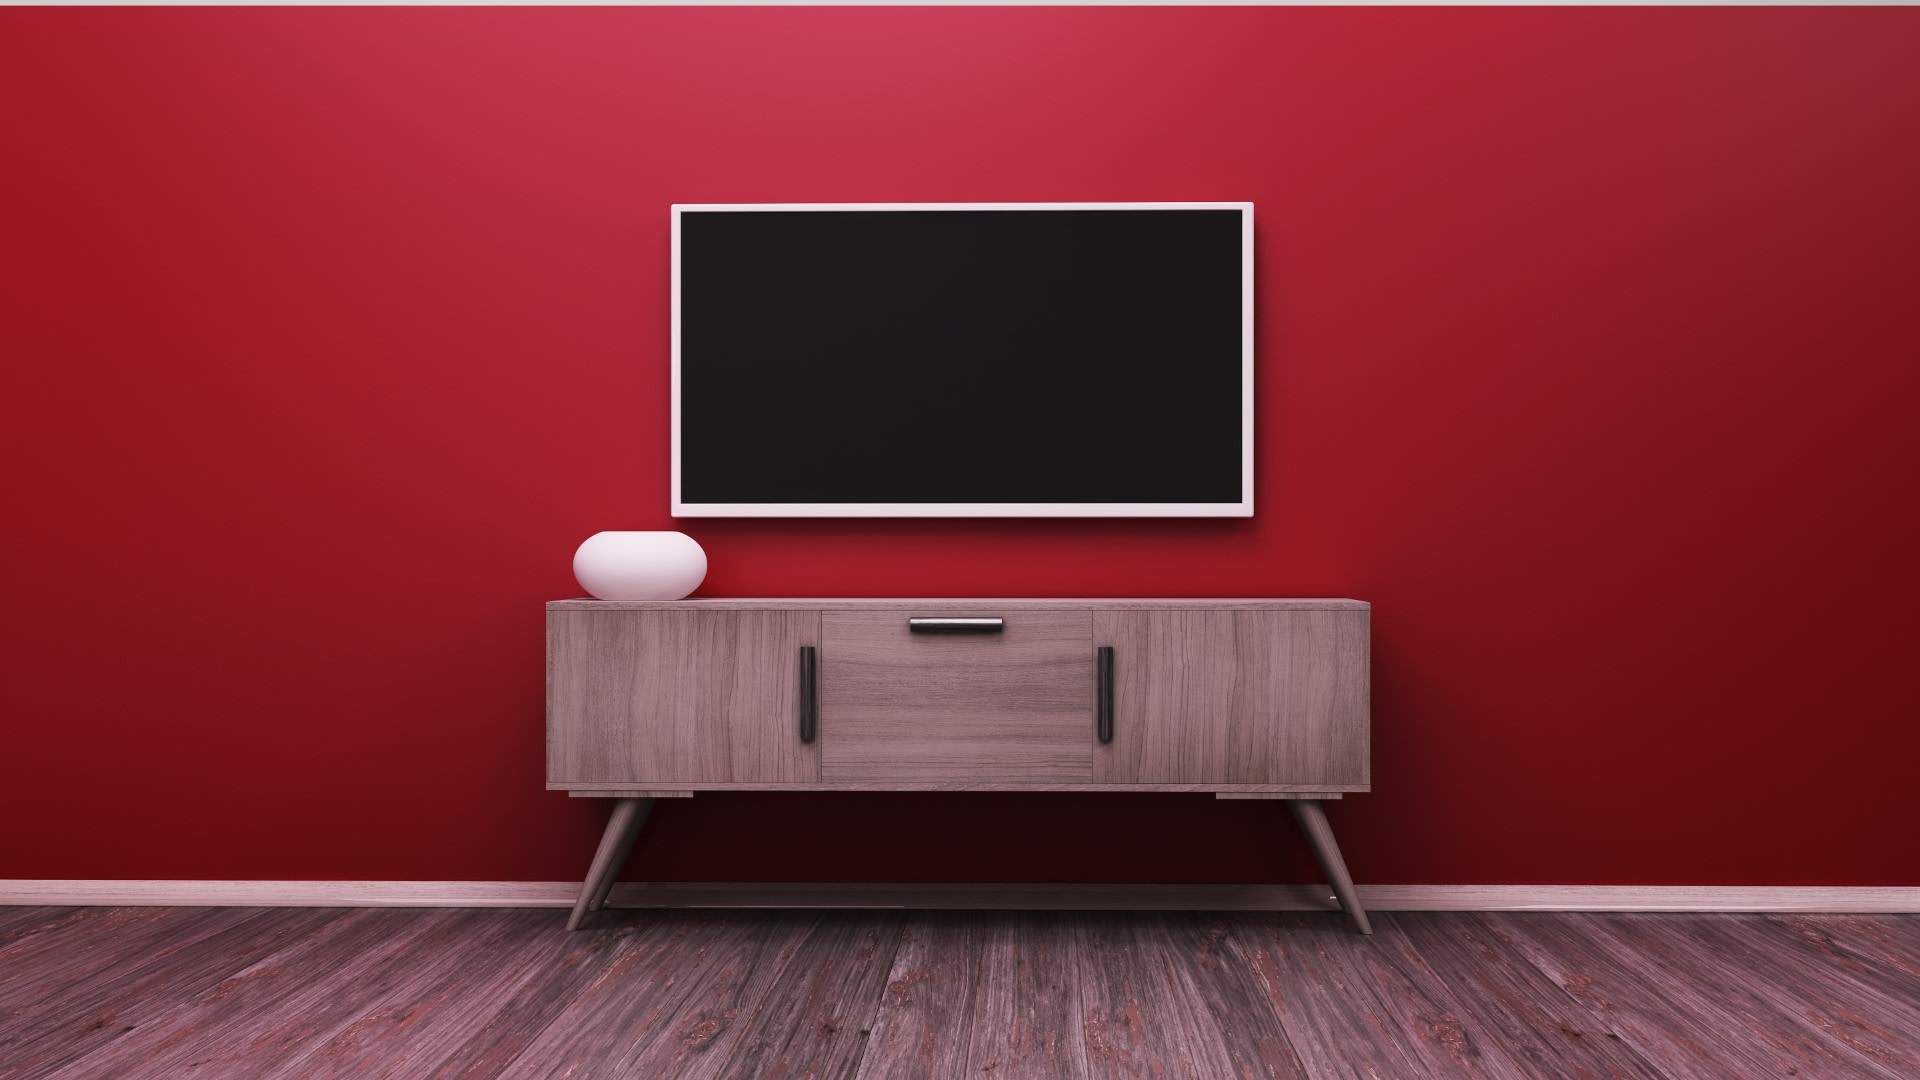 An image related to Best Hisense LED TVs